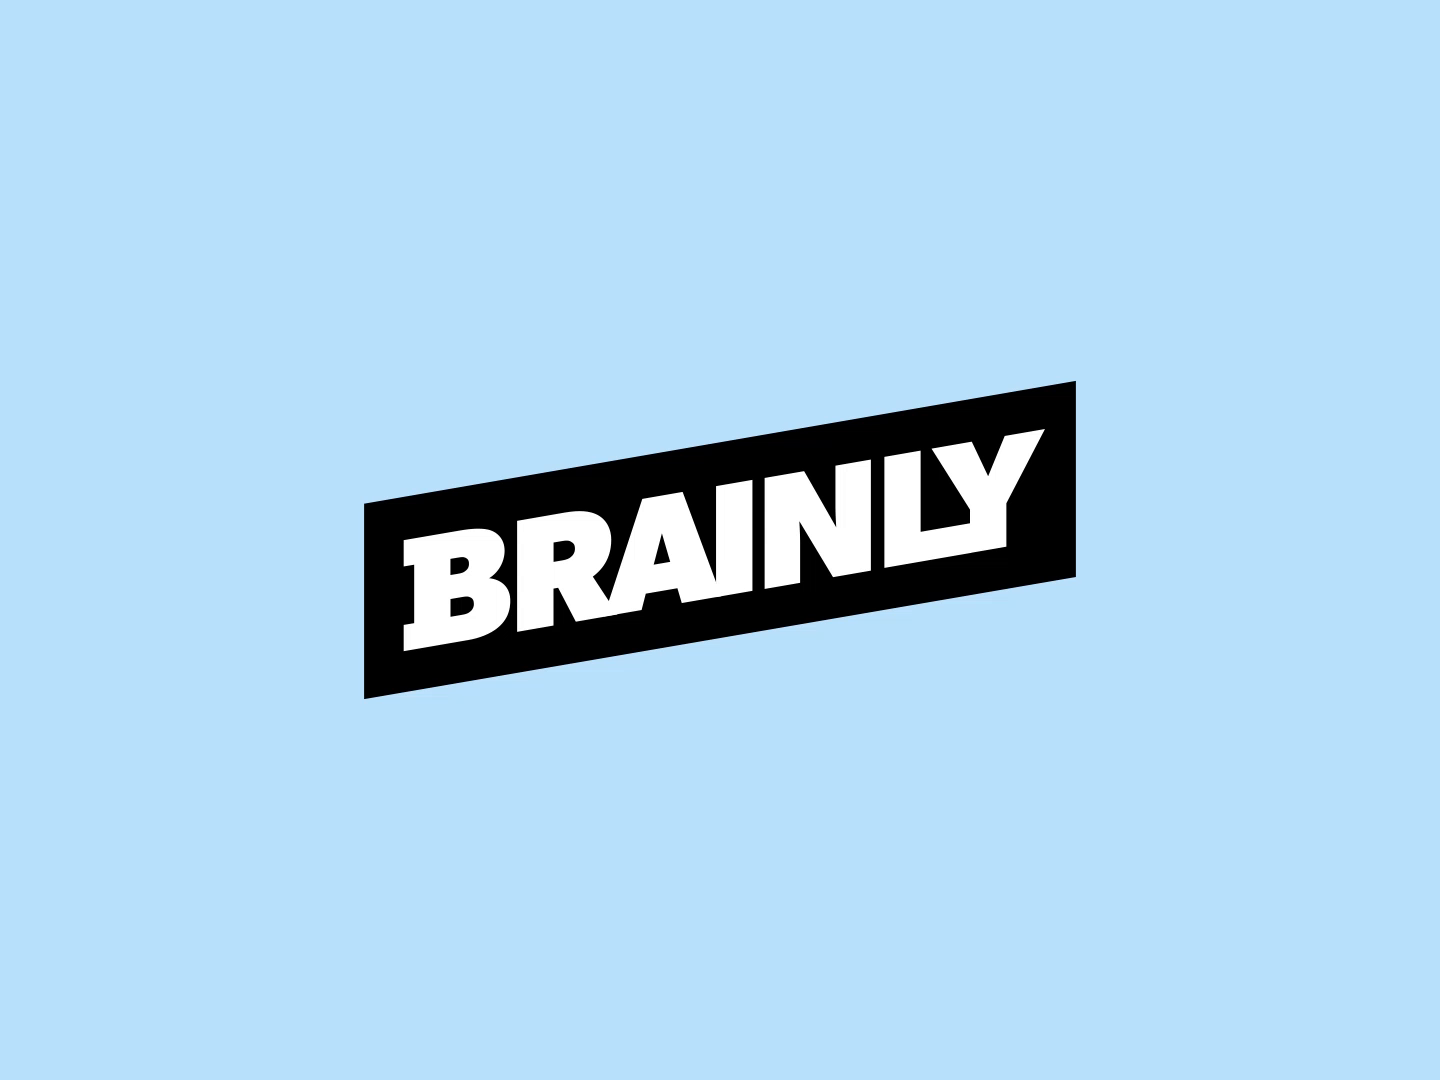 Brainly Logo Animation By Brainly Design Animation Animation Design Logos